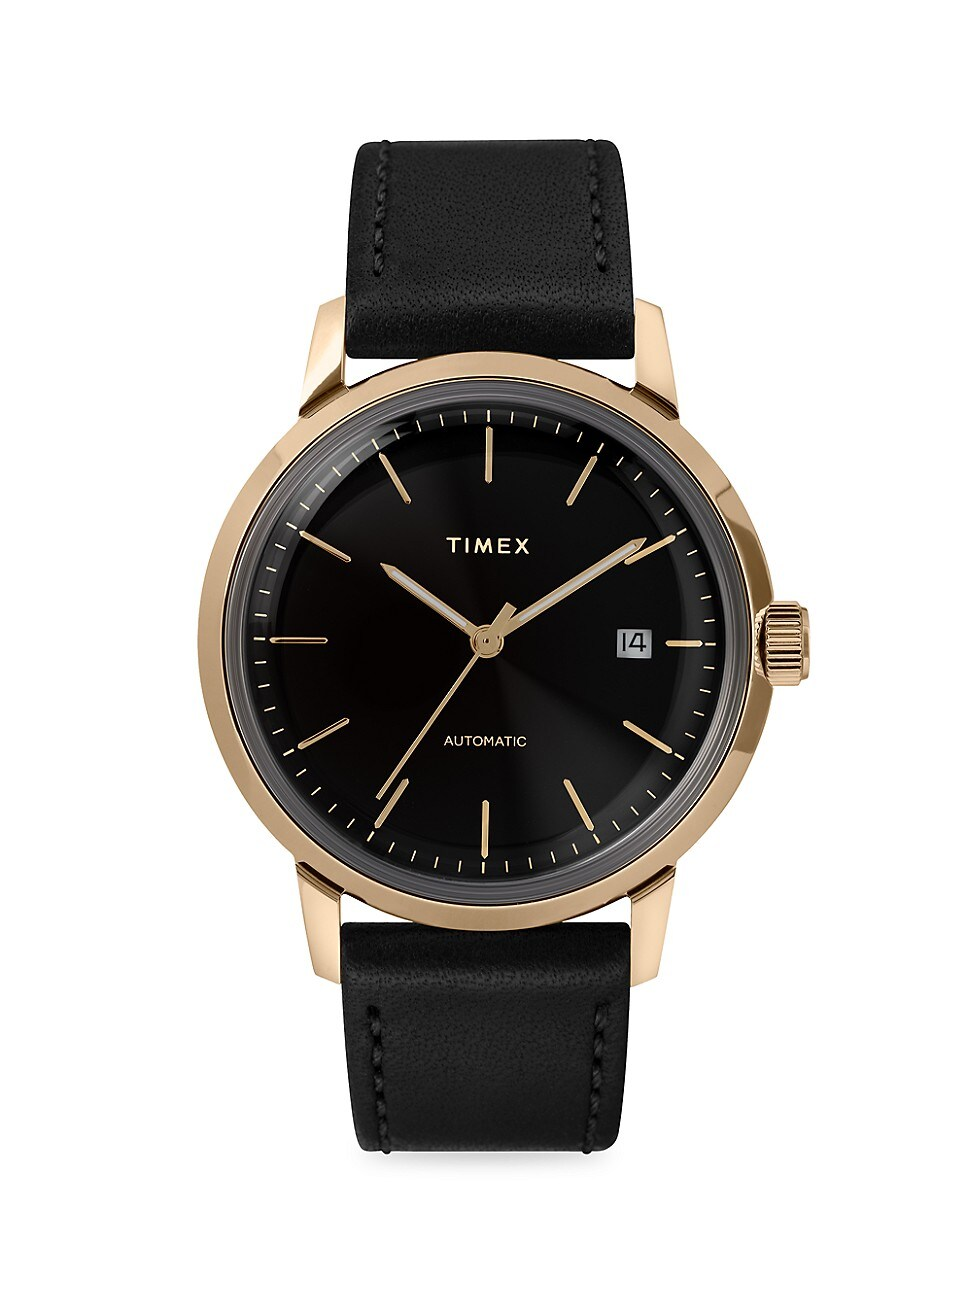 Timex Marlin Automatic 40mm Leather Strap Case Watch In Black